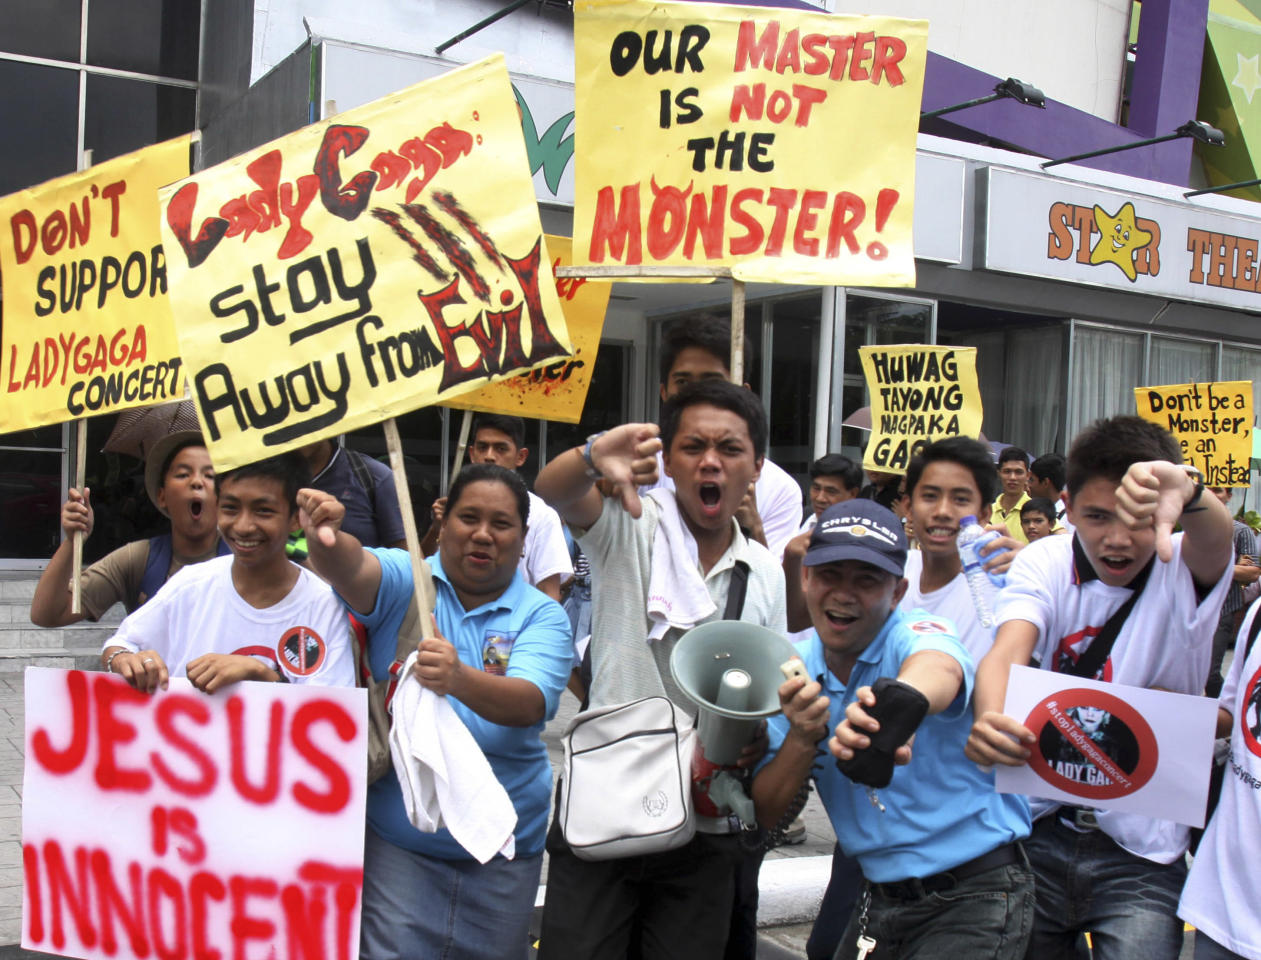 """Members of a religious group give thumbs-down signs as they shout """"Stop Lady Gaga Concert"""" during a rally near the venue of the pop diva's upcoming concert Saturday, May 19, 2012 in suburban Pasay, south of Manila, Philippines. They said they were offended by her music and videos, in particular her song """"Judas,"""" which they say mocks Jesus Christ. (AP Photo/Pat Roque)"""